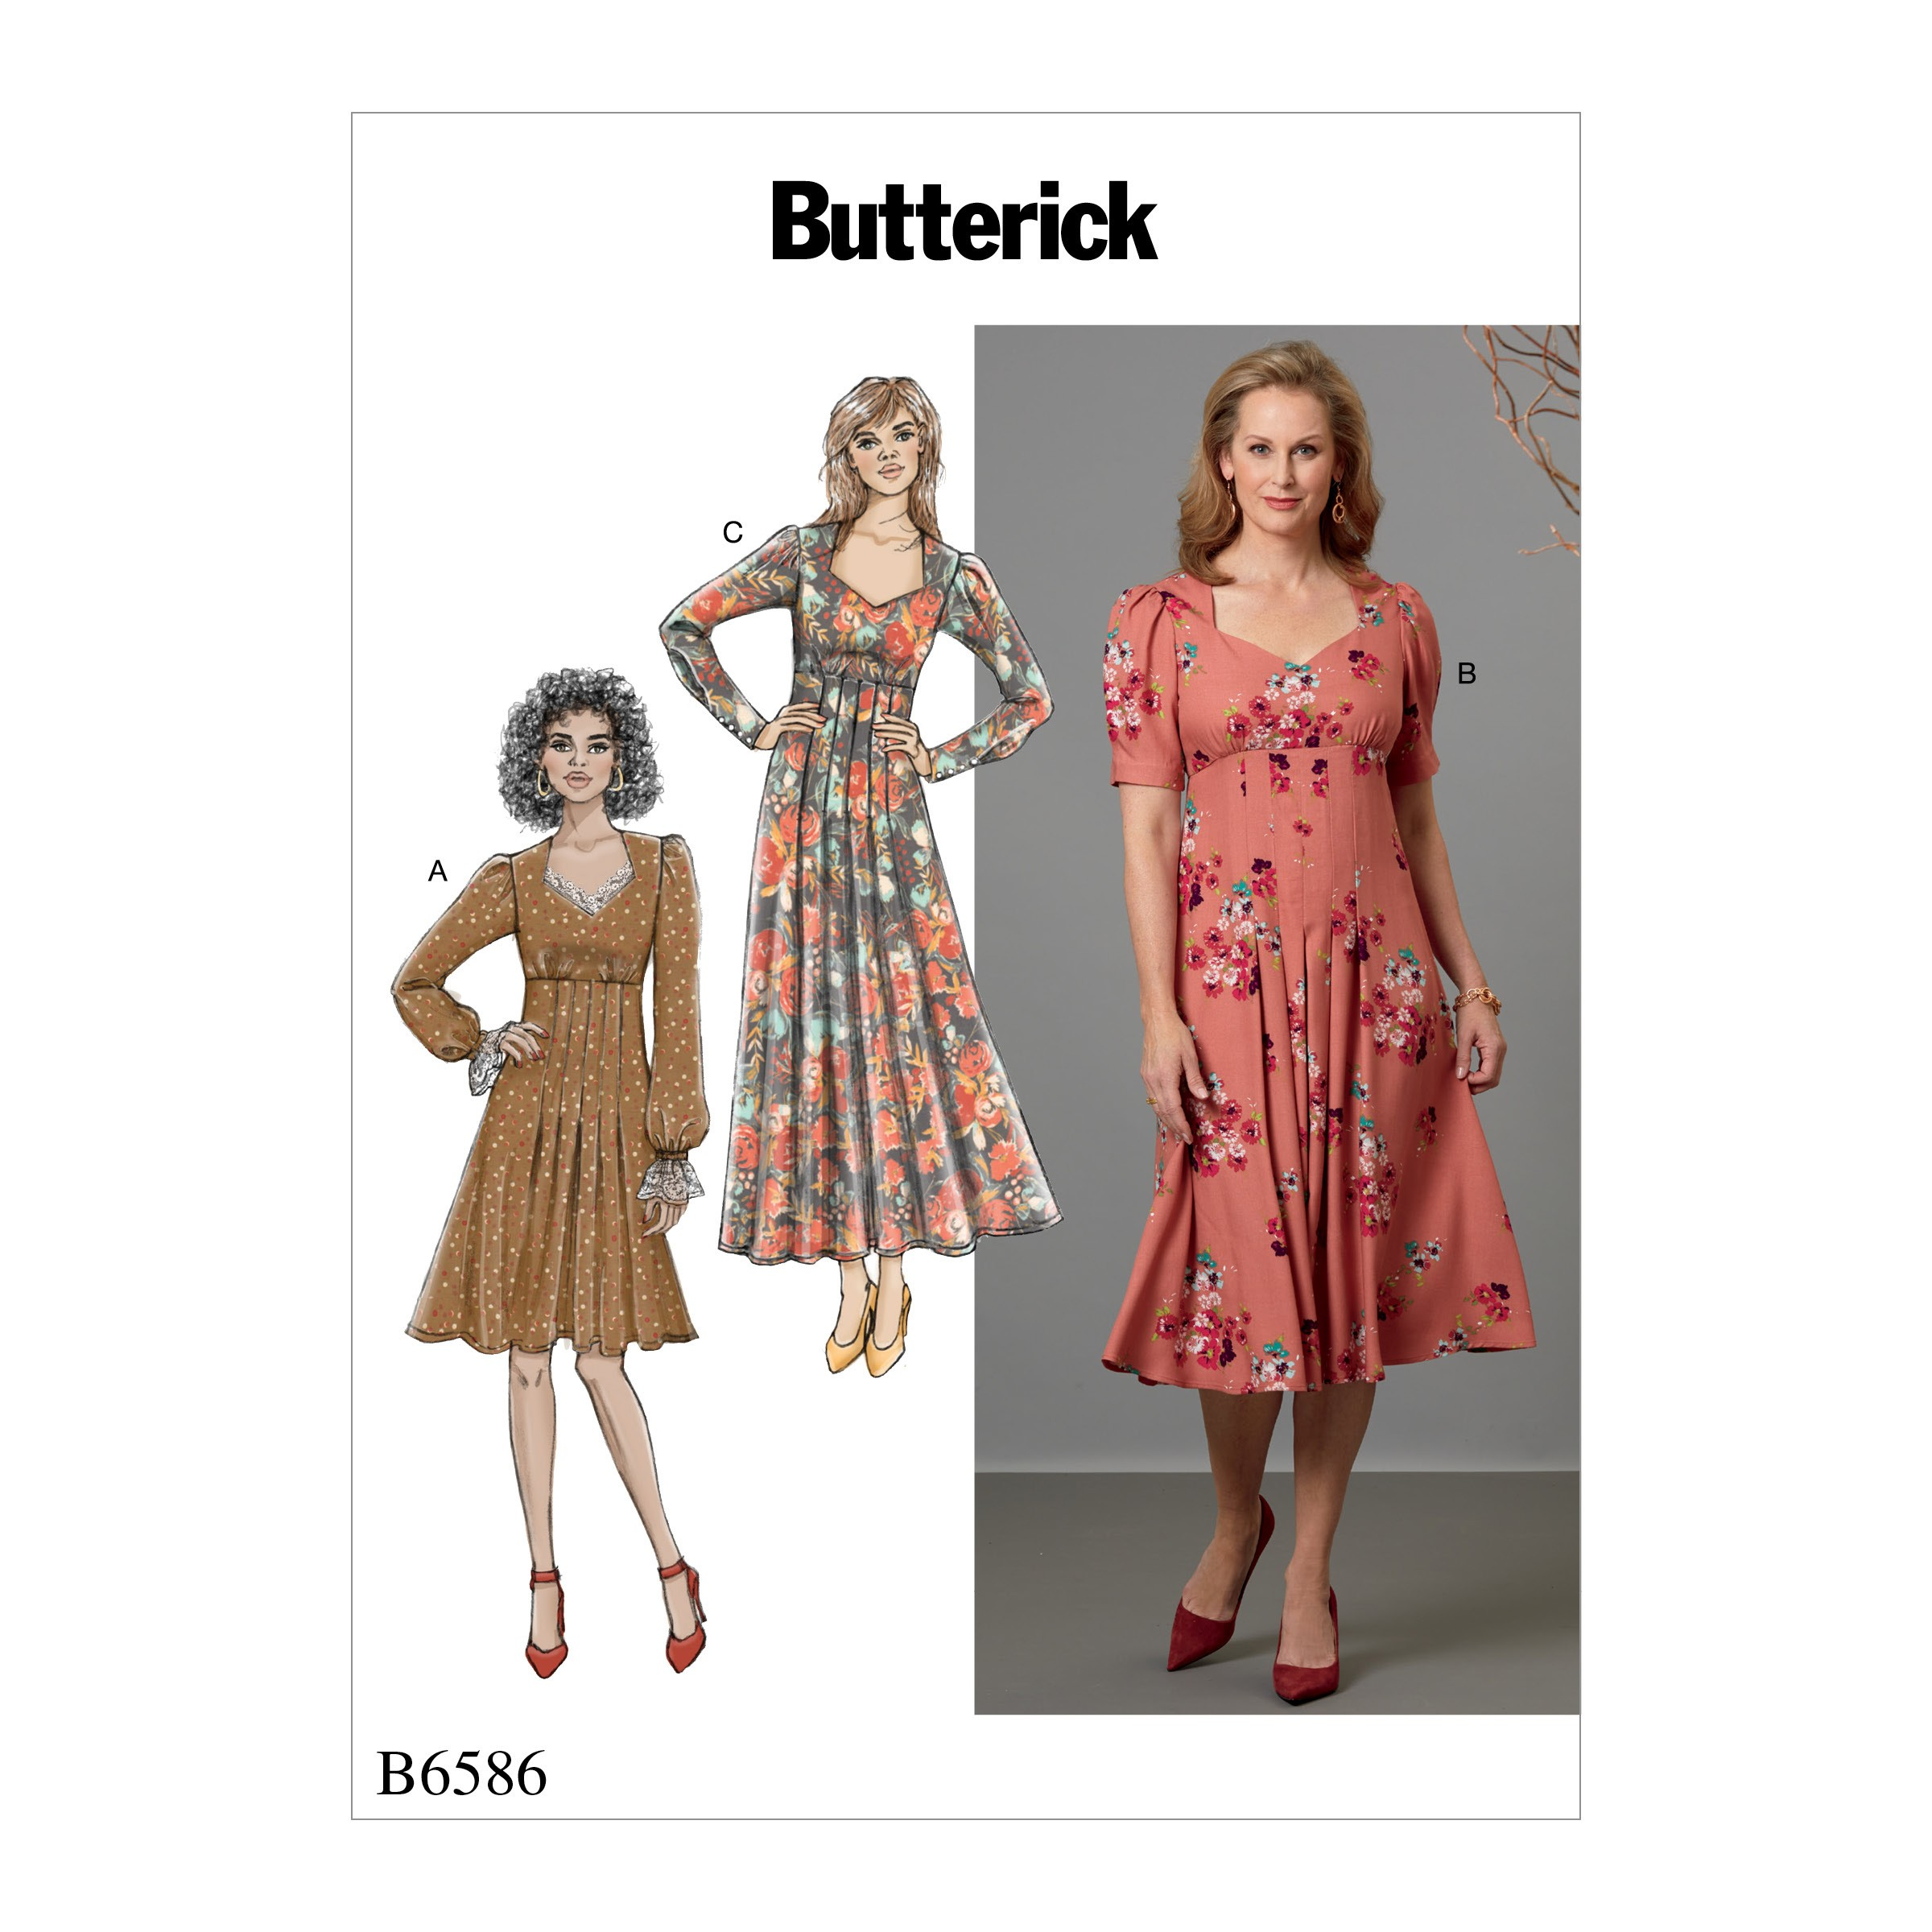 Butterick Sewing Pattern 6586 Misses' Dress with Sweetheart Neckline